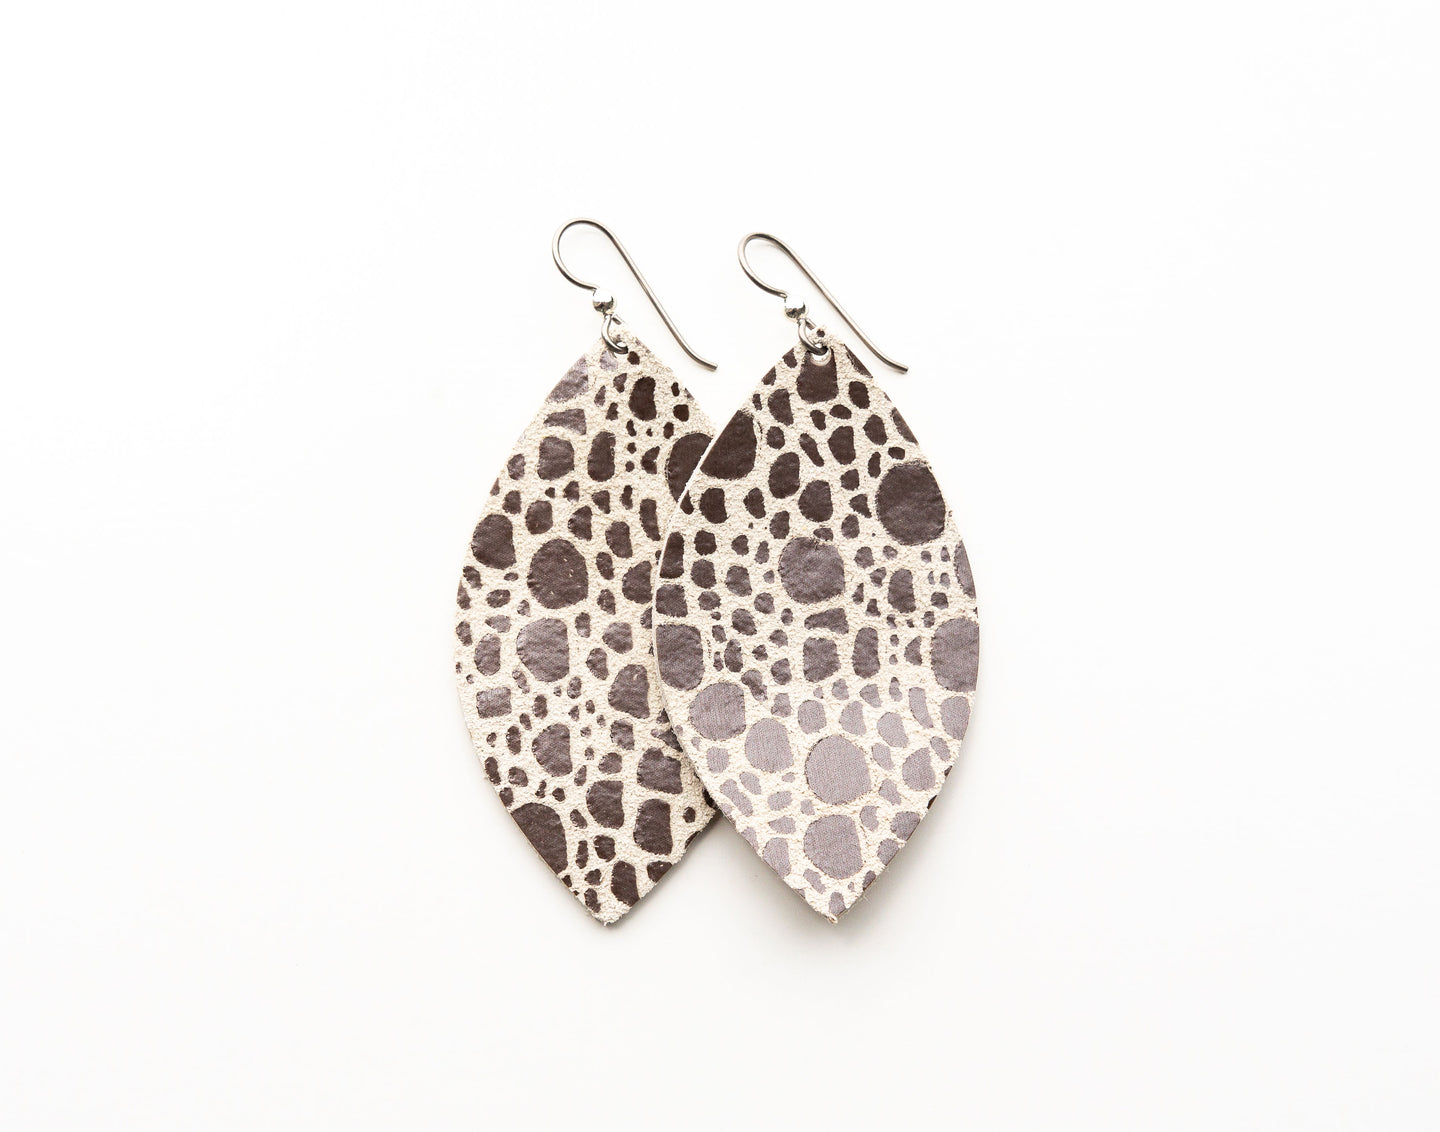 Pebbles in Silver Leather Earrings